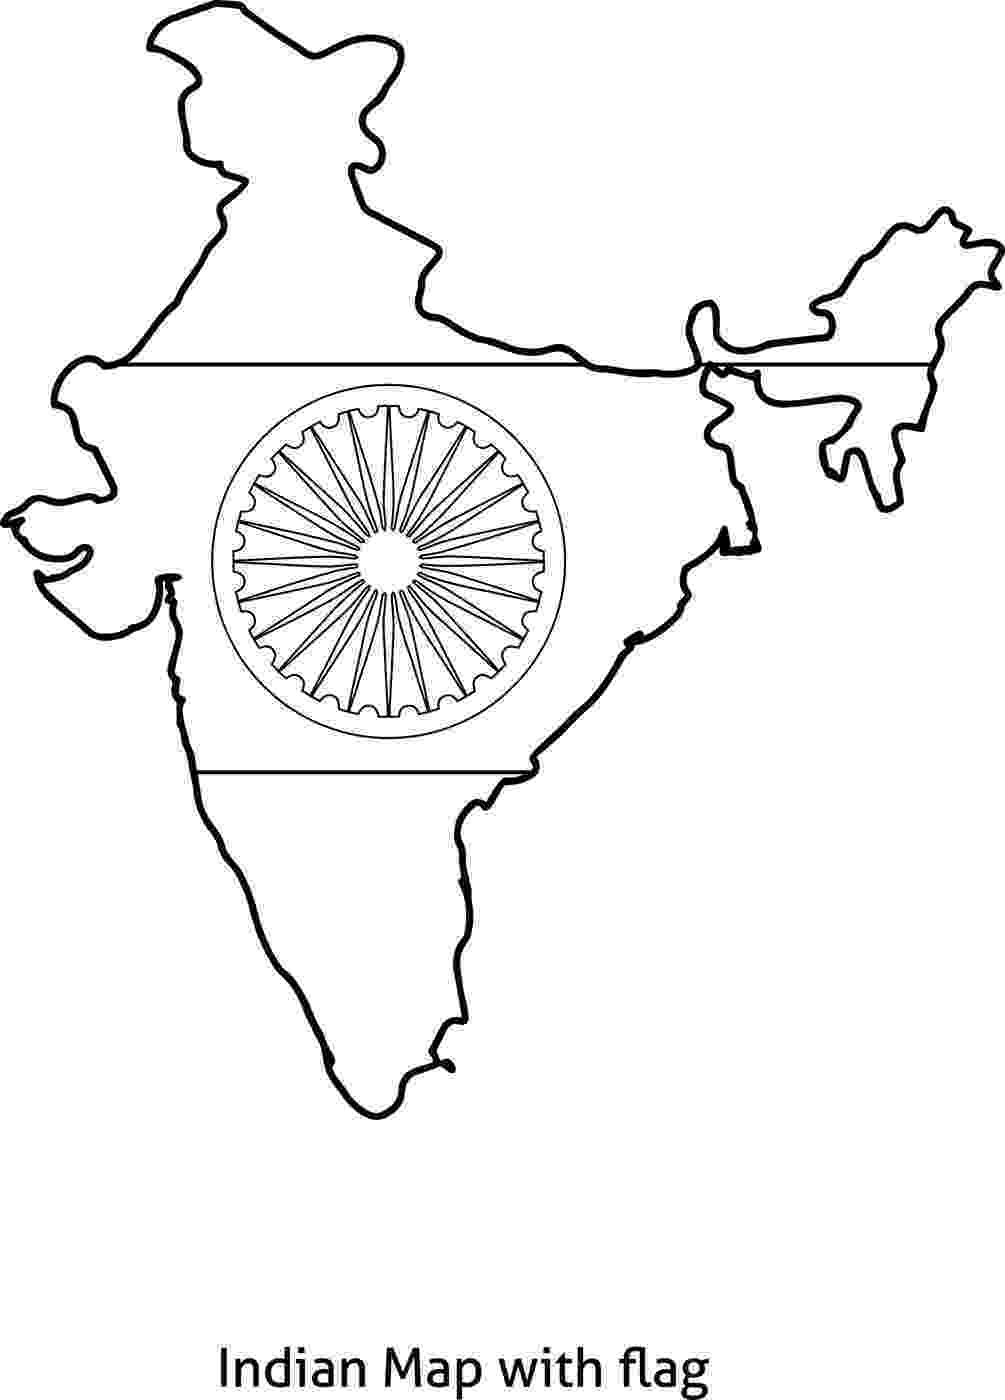 indian flag picture for colouring india independence day coloring pages for kids indian for flag colouring picture